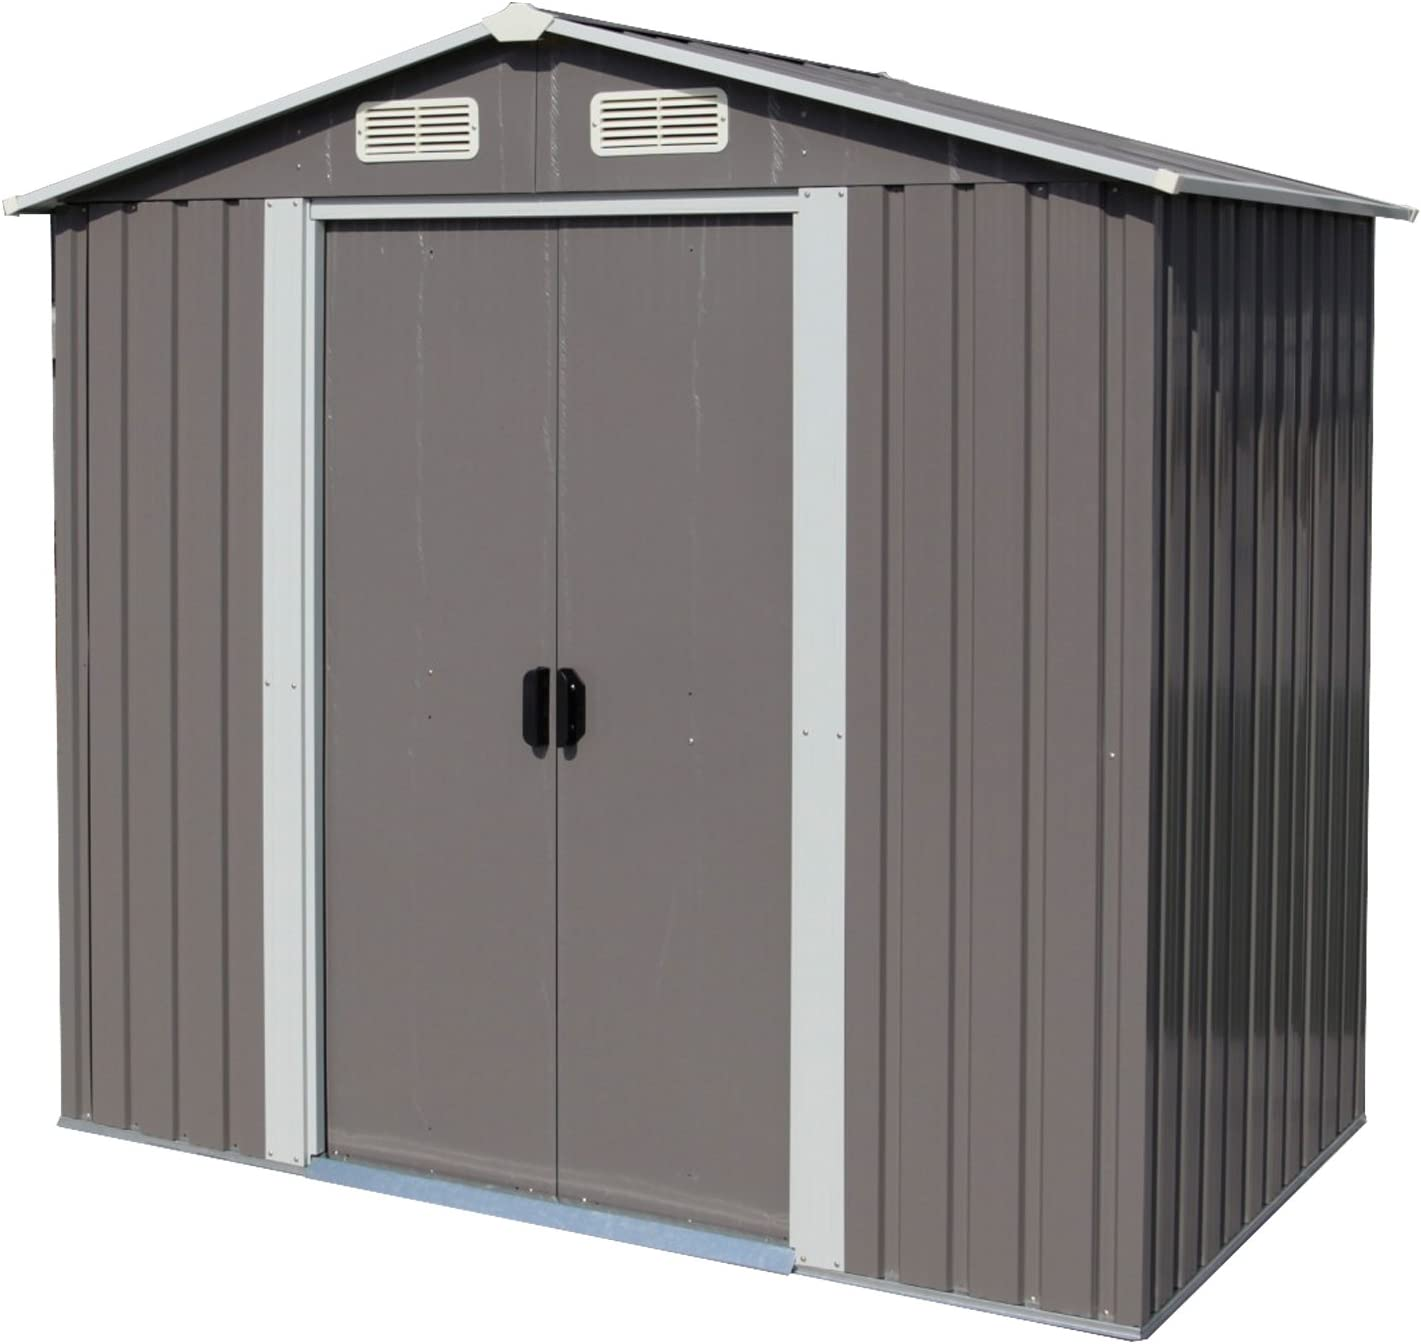 Max 50% OFF Outdoor Storage Shed with It is very popular Vents 6 4 Garden x Metal Uti Feet